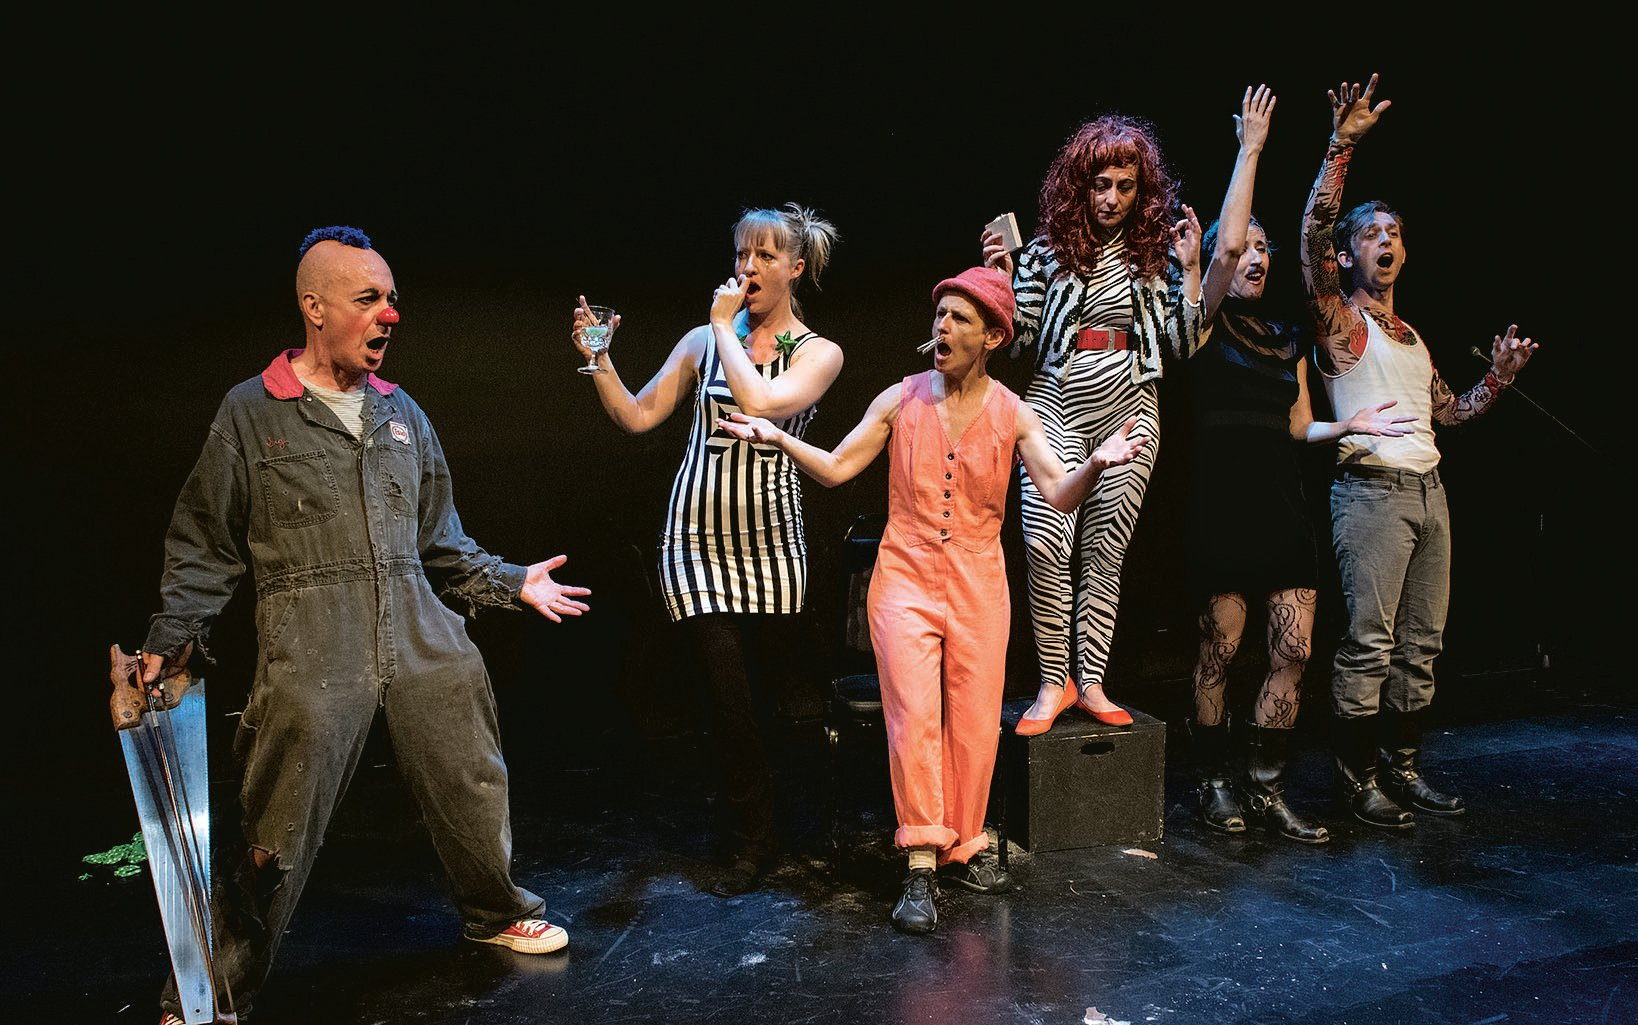 Photograph of cabaret courtesy of Capital Fringe Festival .